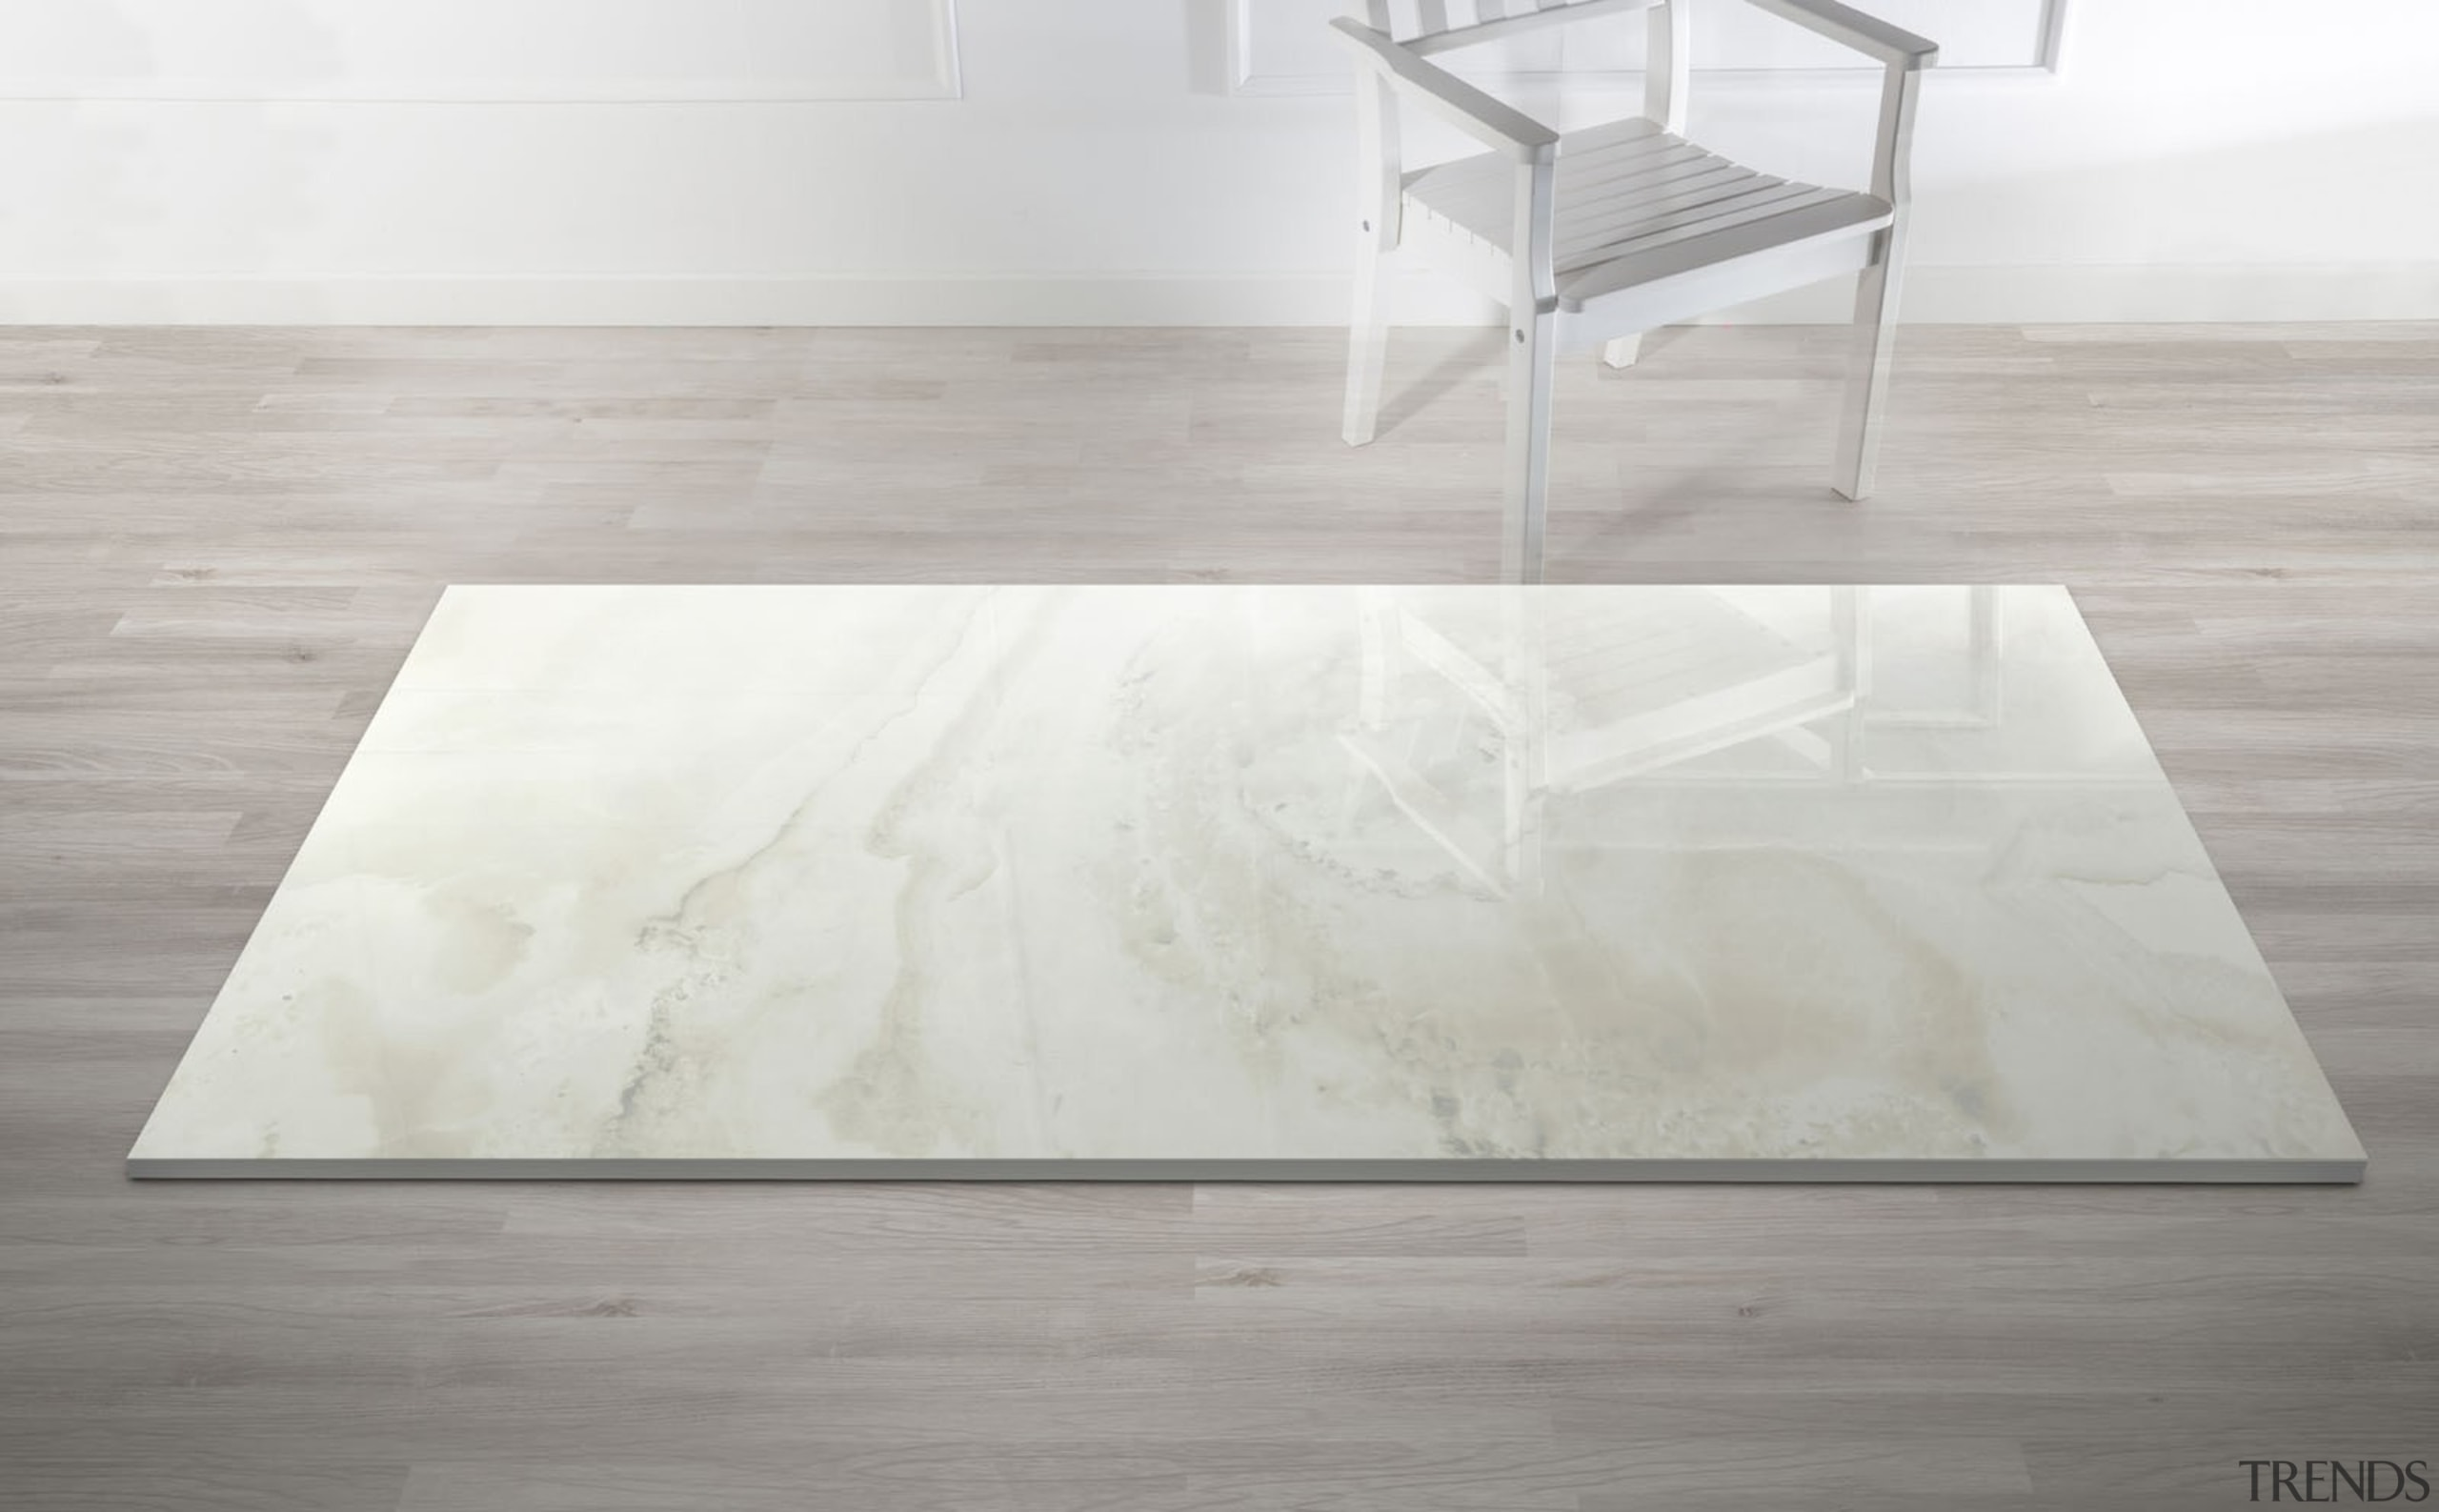 Dekton - coffee table | floor | flooring coffee table, floor, flooring, furniture, hardwood, laminate flooring, product design, table, wood, wood flooring, gray, white